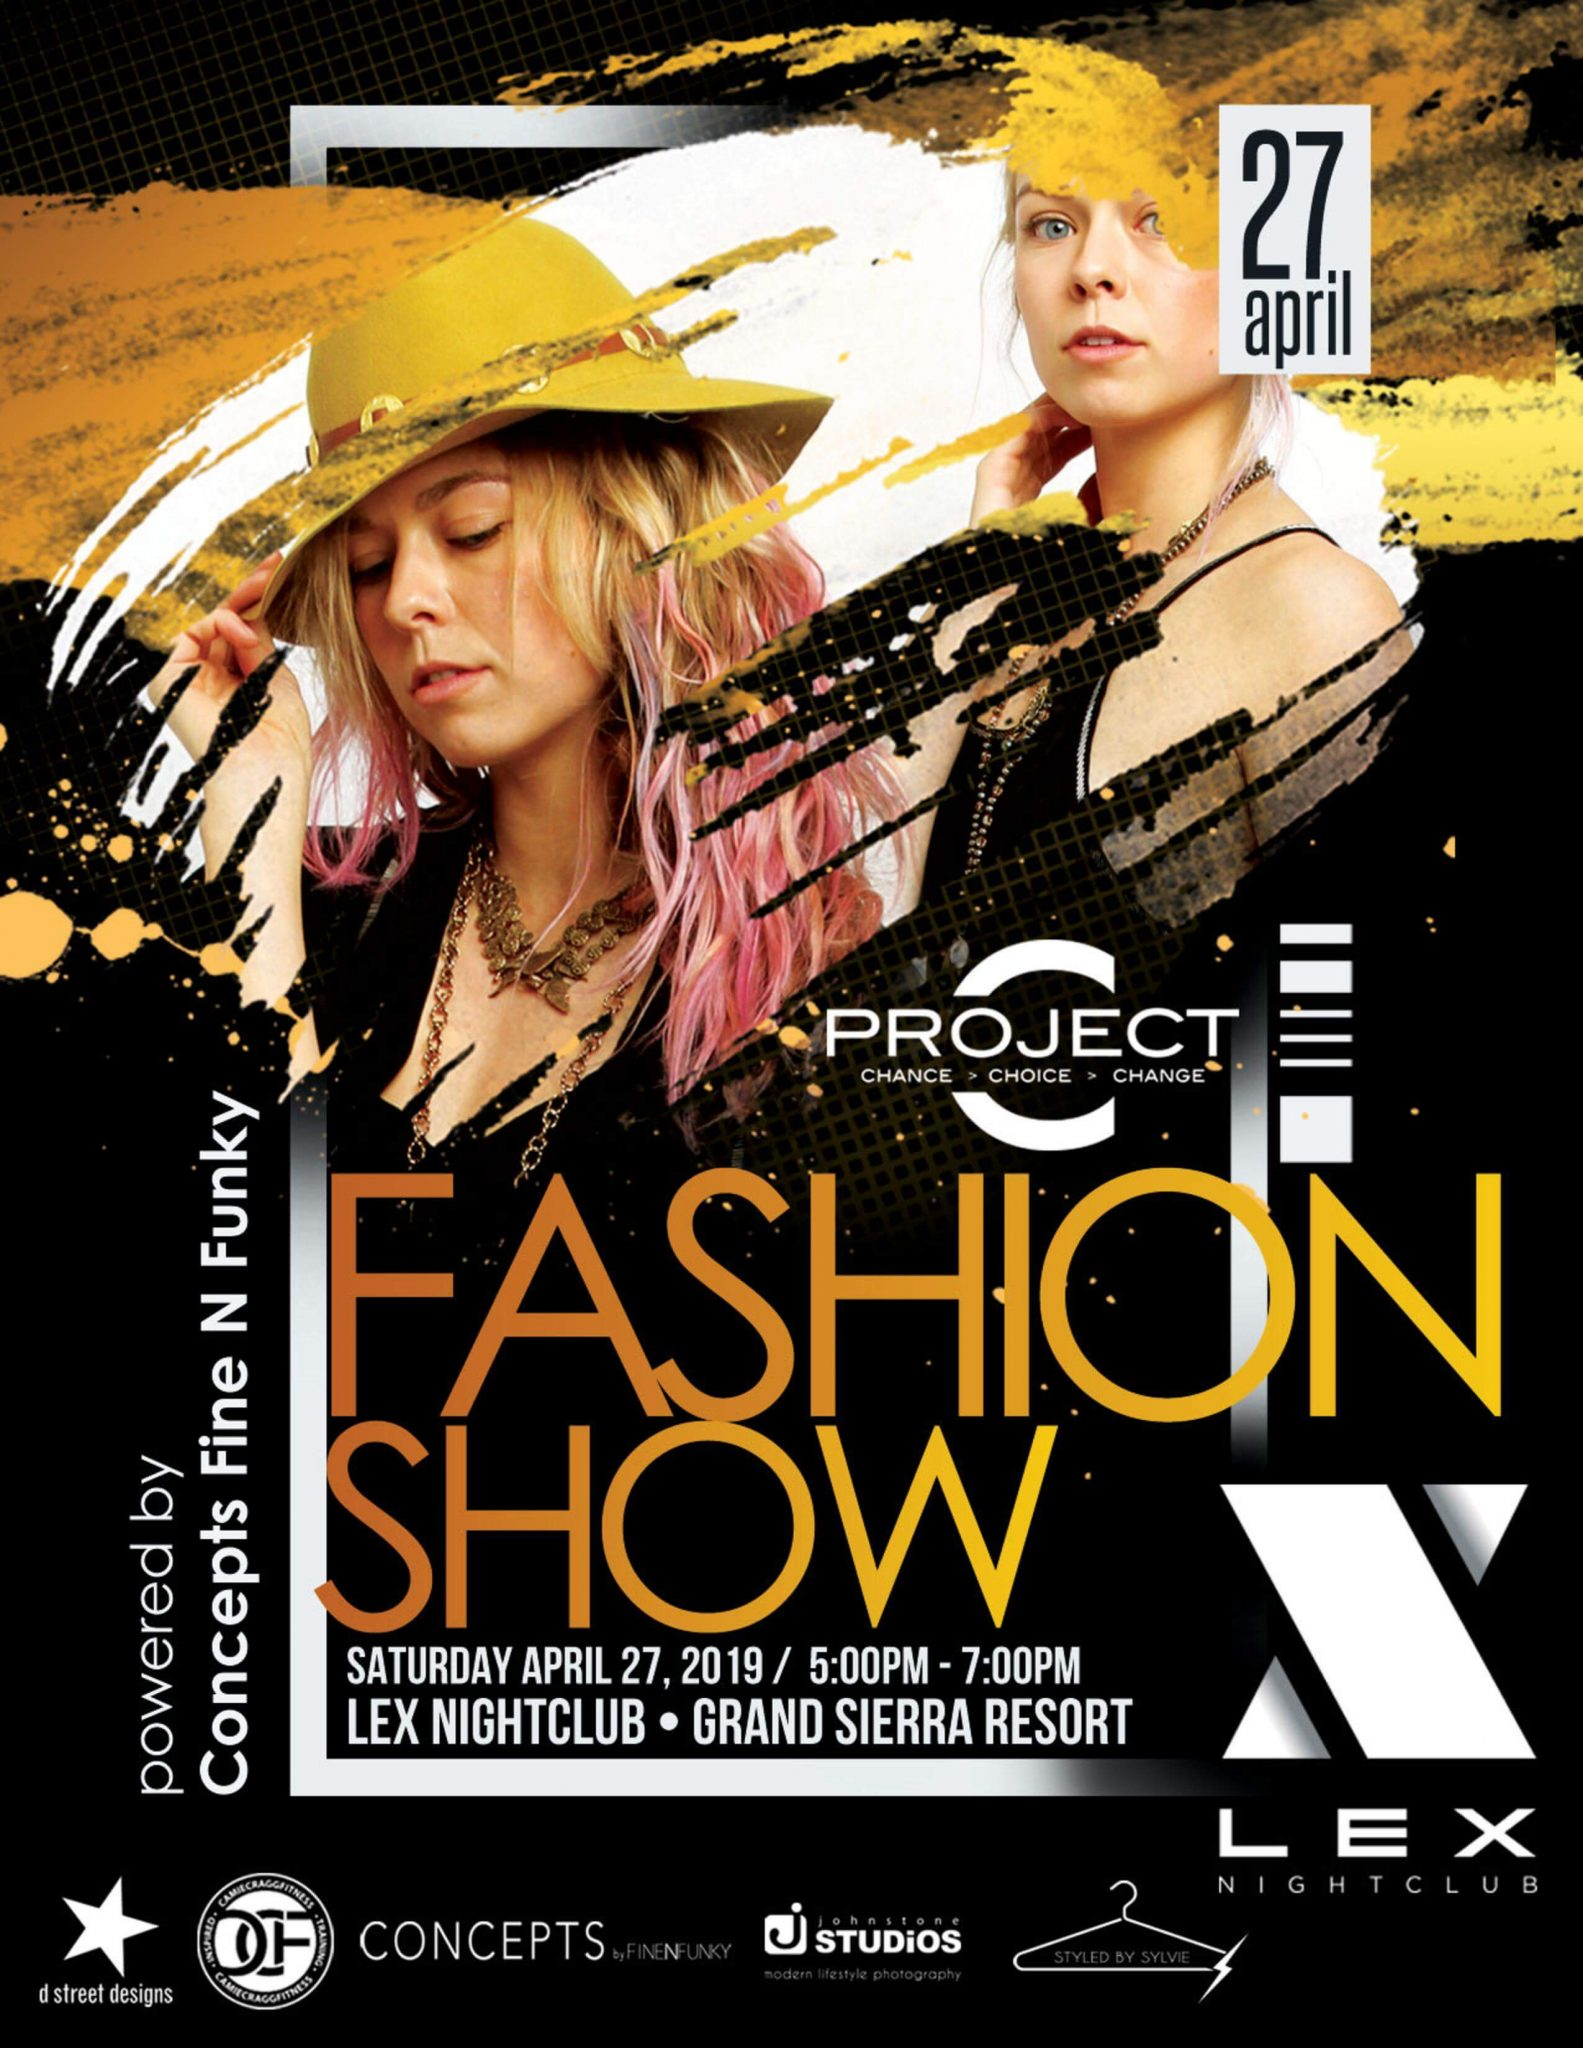 Project C Fashion Show Feauted